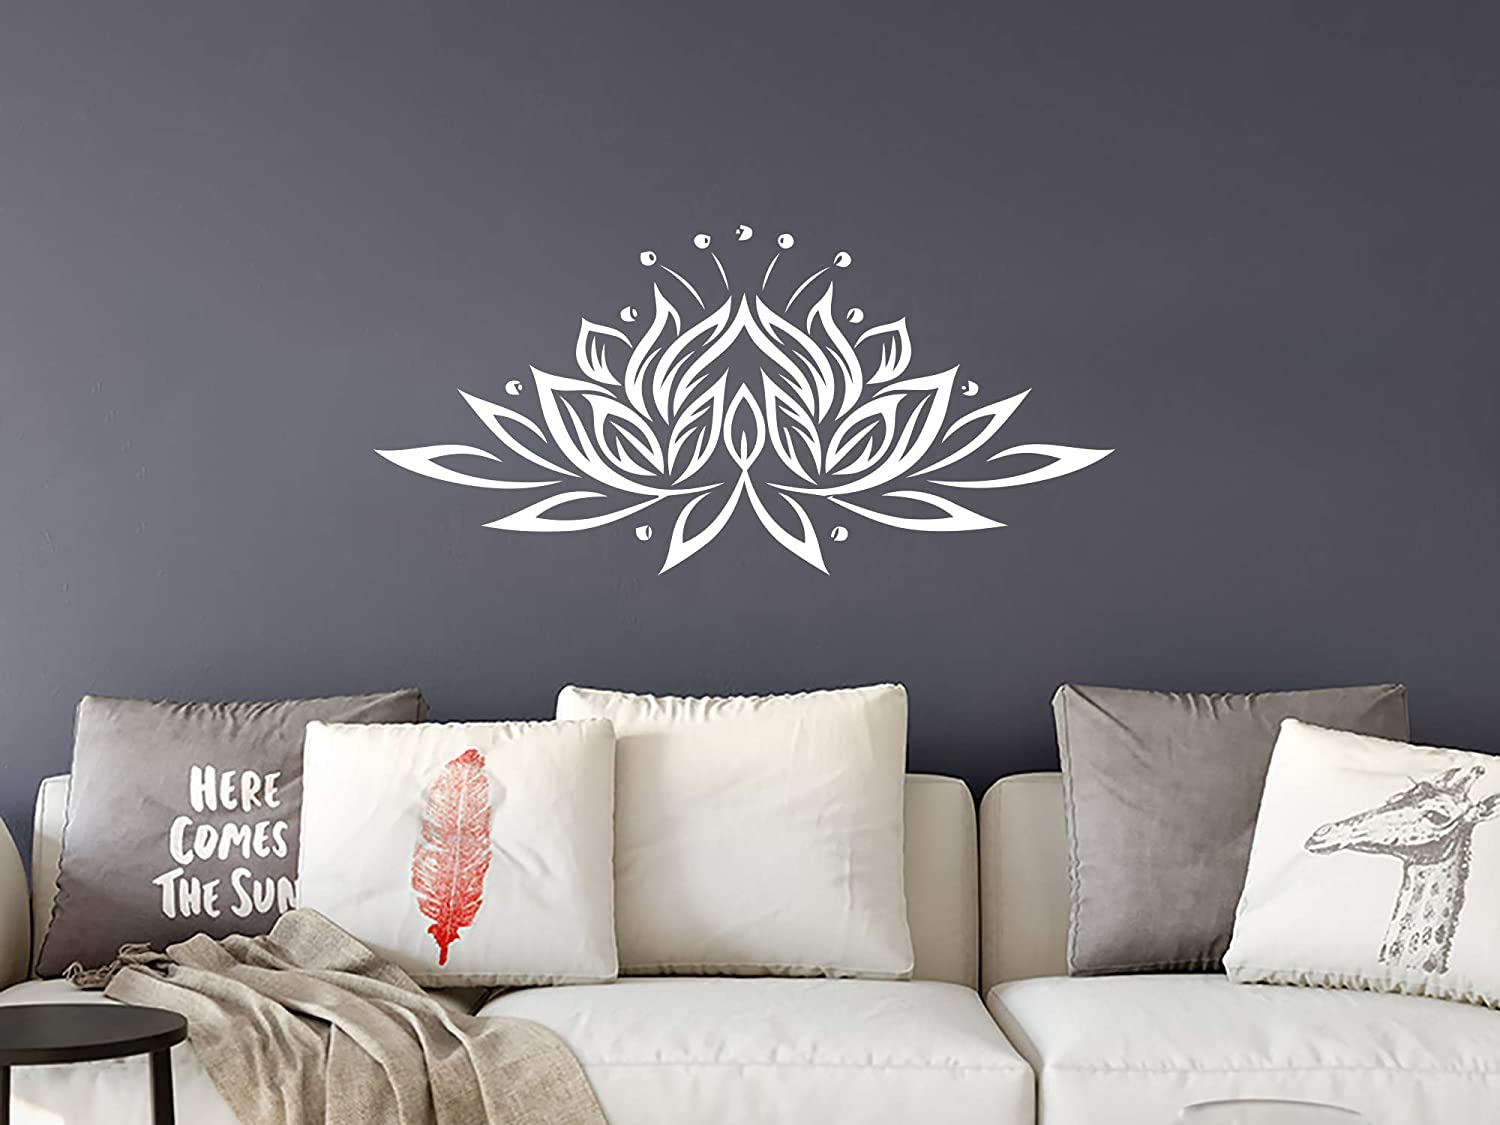 Wall decal vinyl sticker decals mandala namaste lotus flower indian lotus yoga wall stickers home decor art bedroom design interior wall decor mural c359